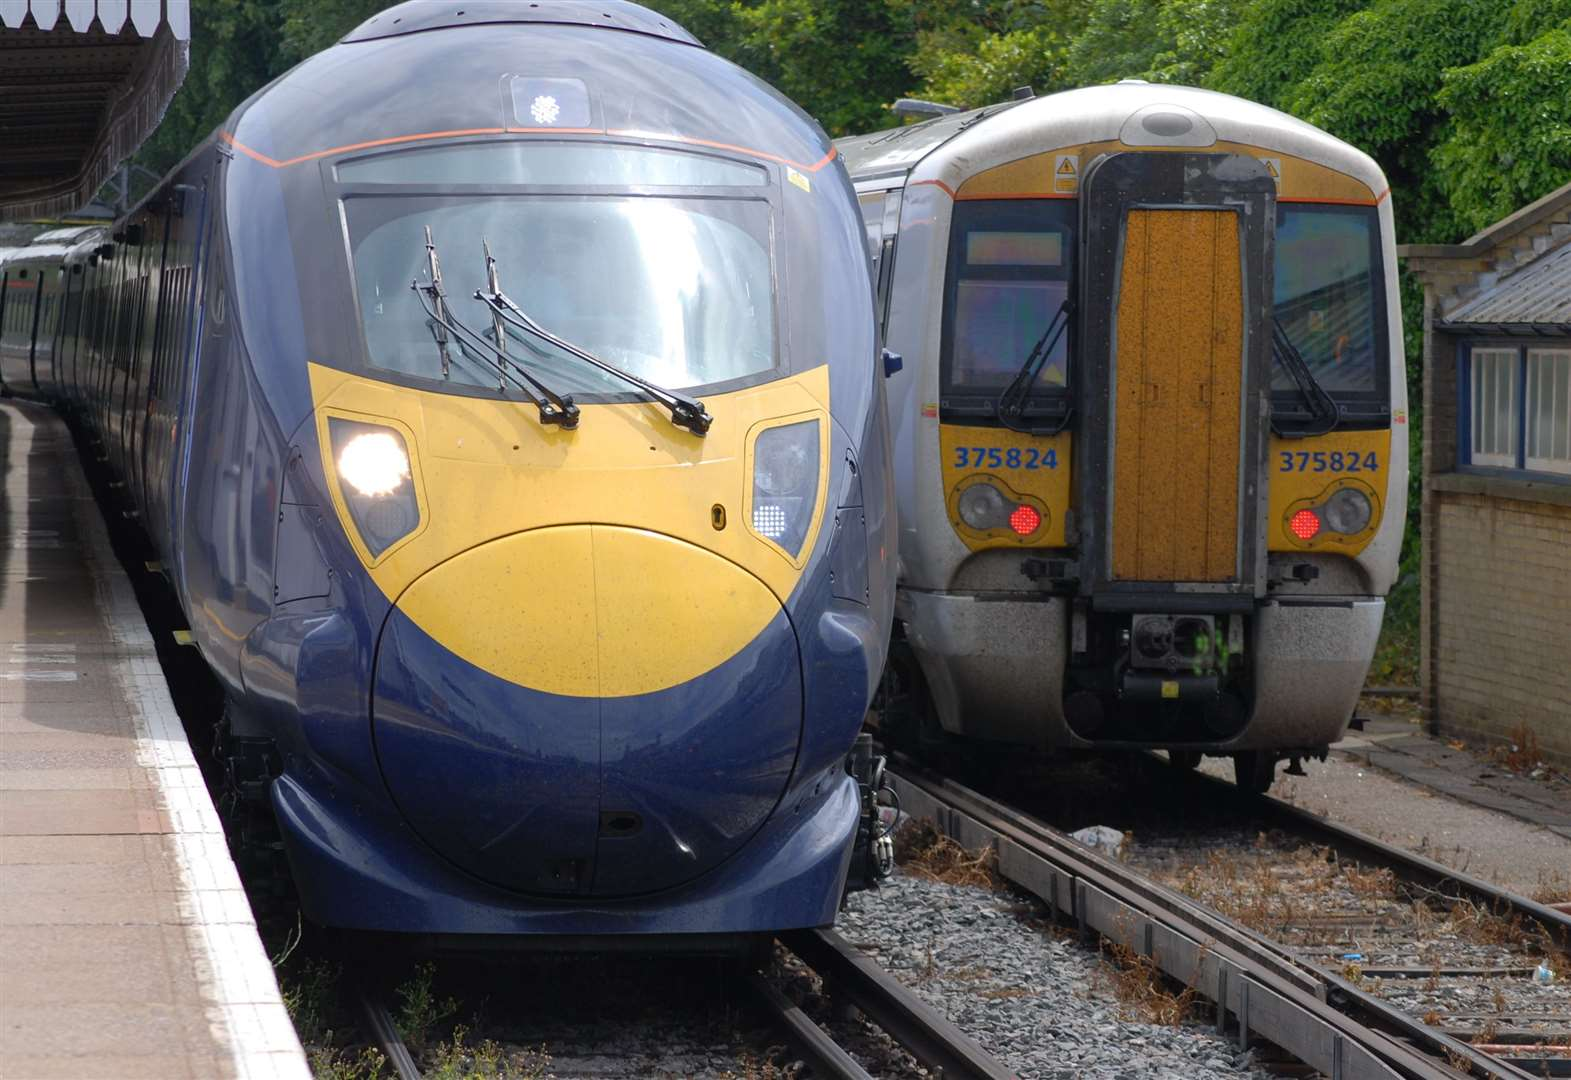 Changes to rail services this weekend